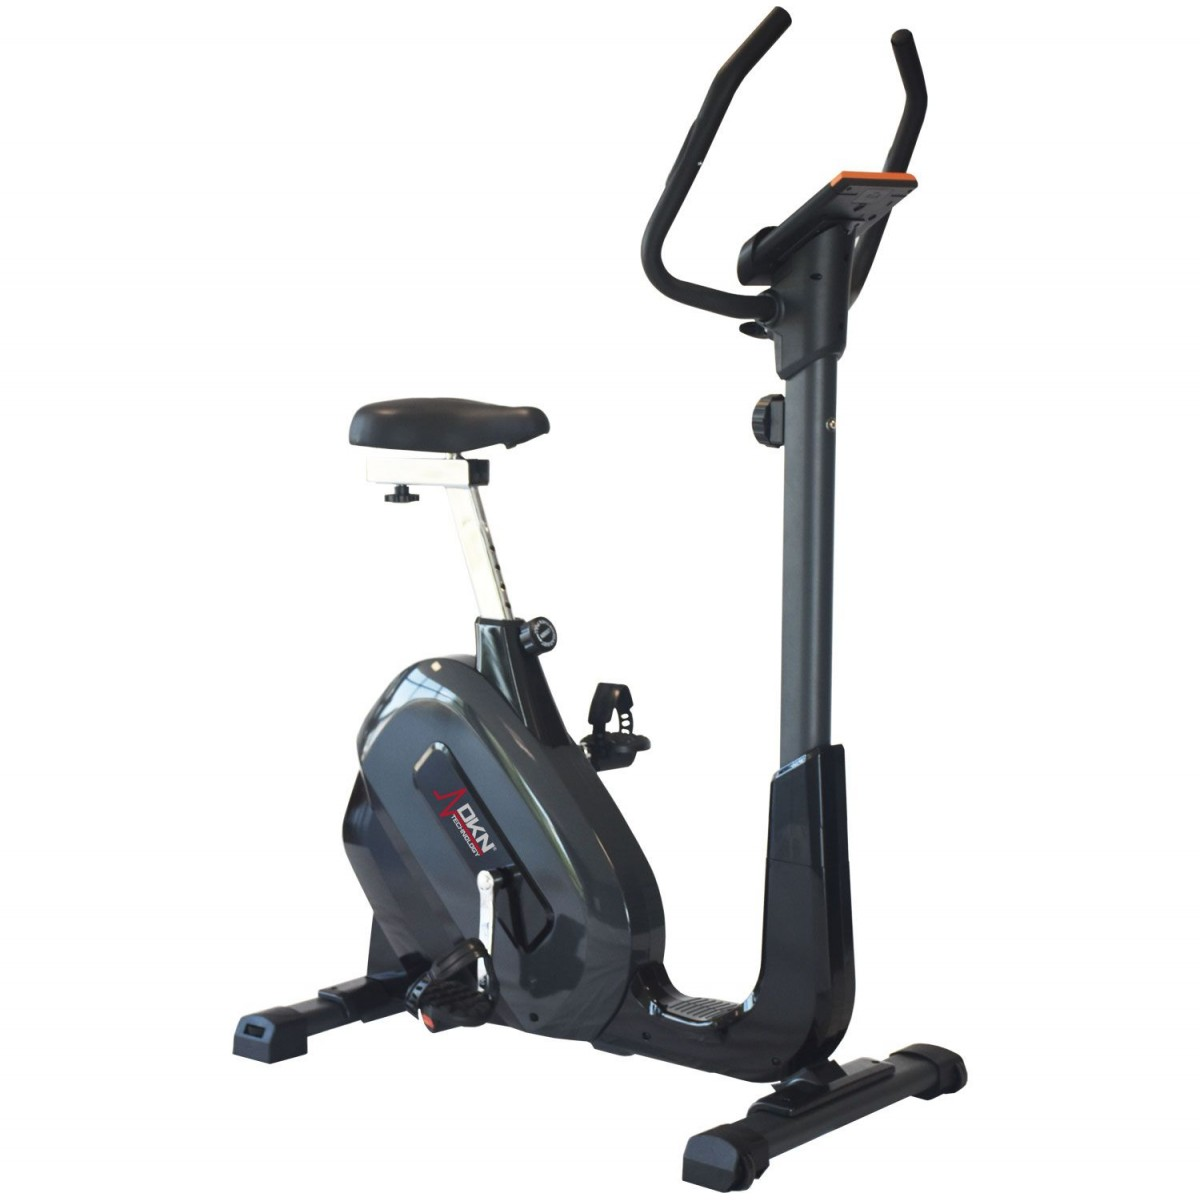 DKN Magbike M-470 Exercise Bike